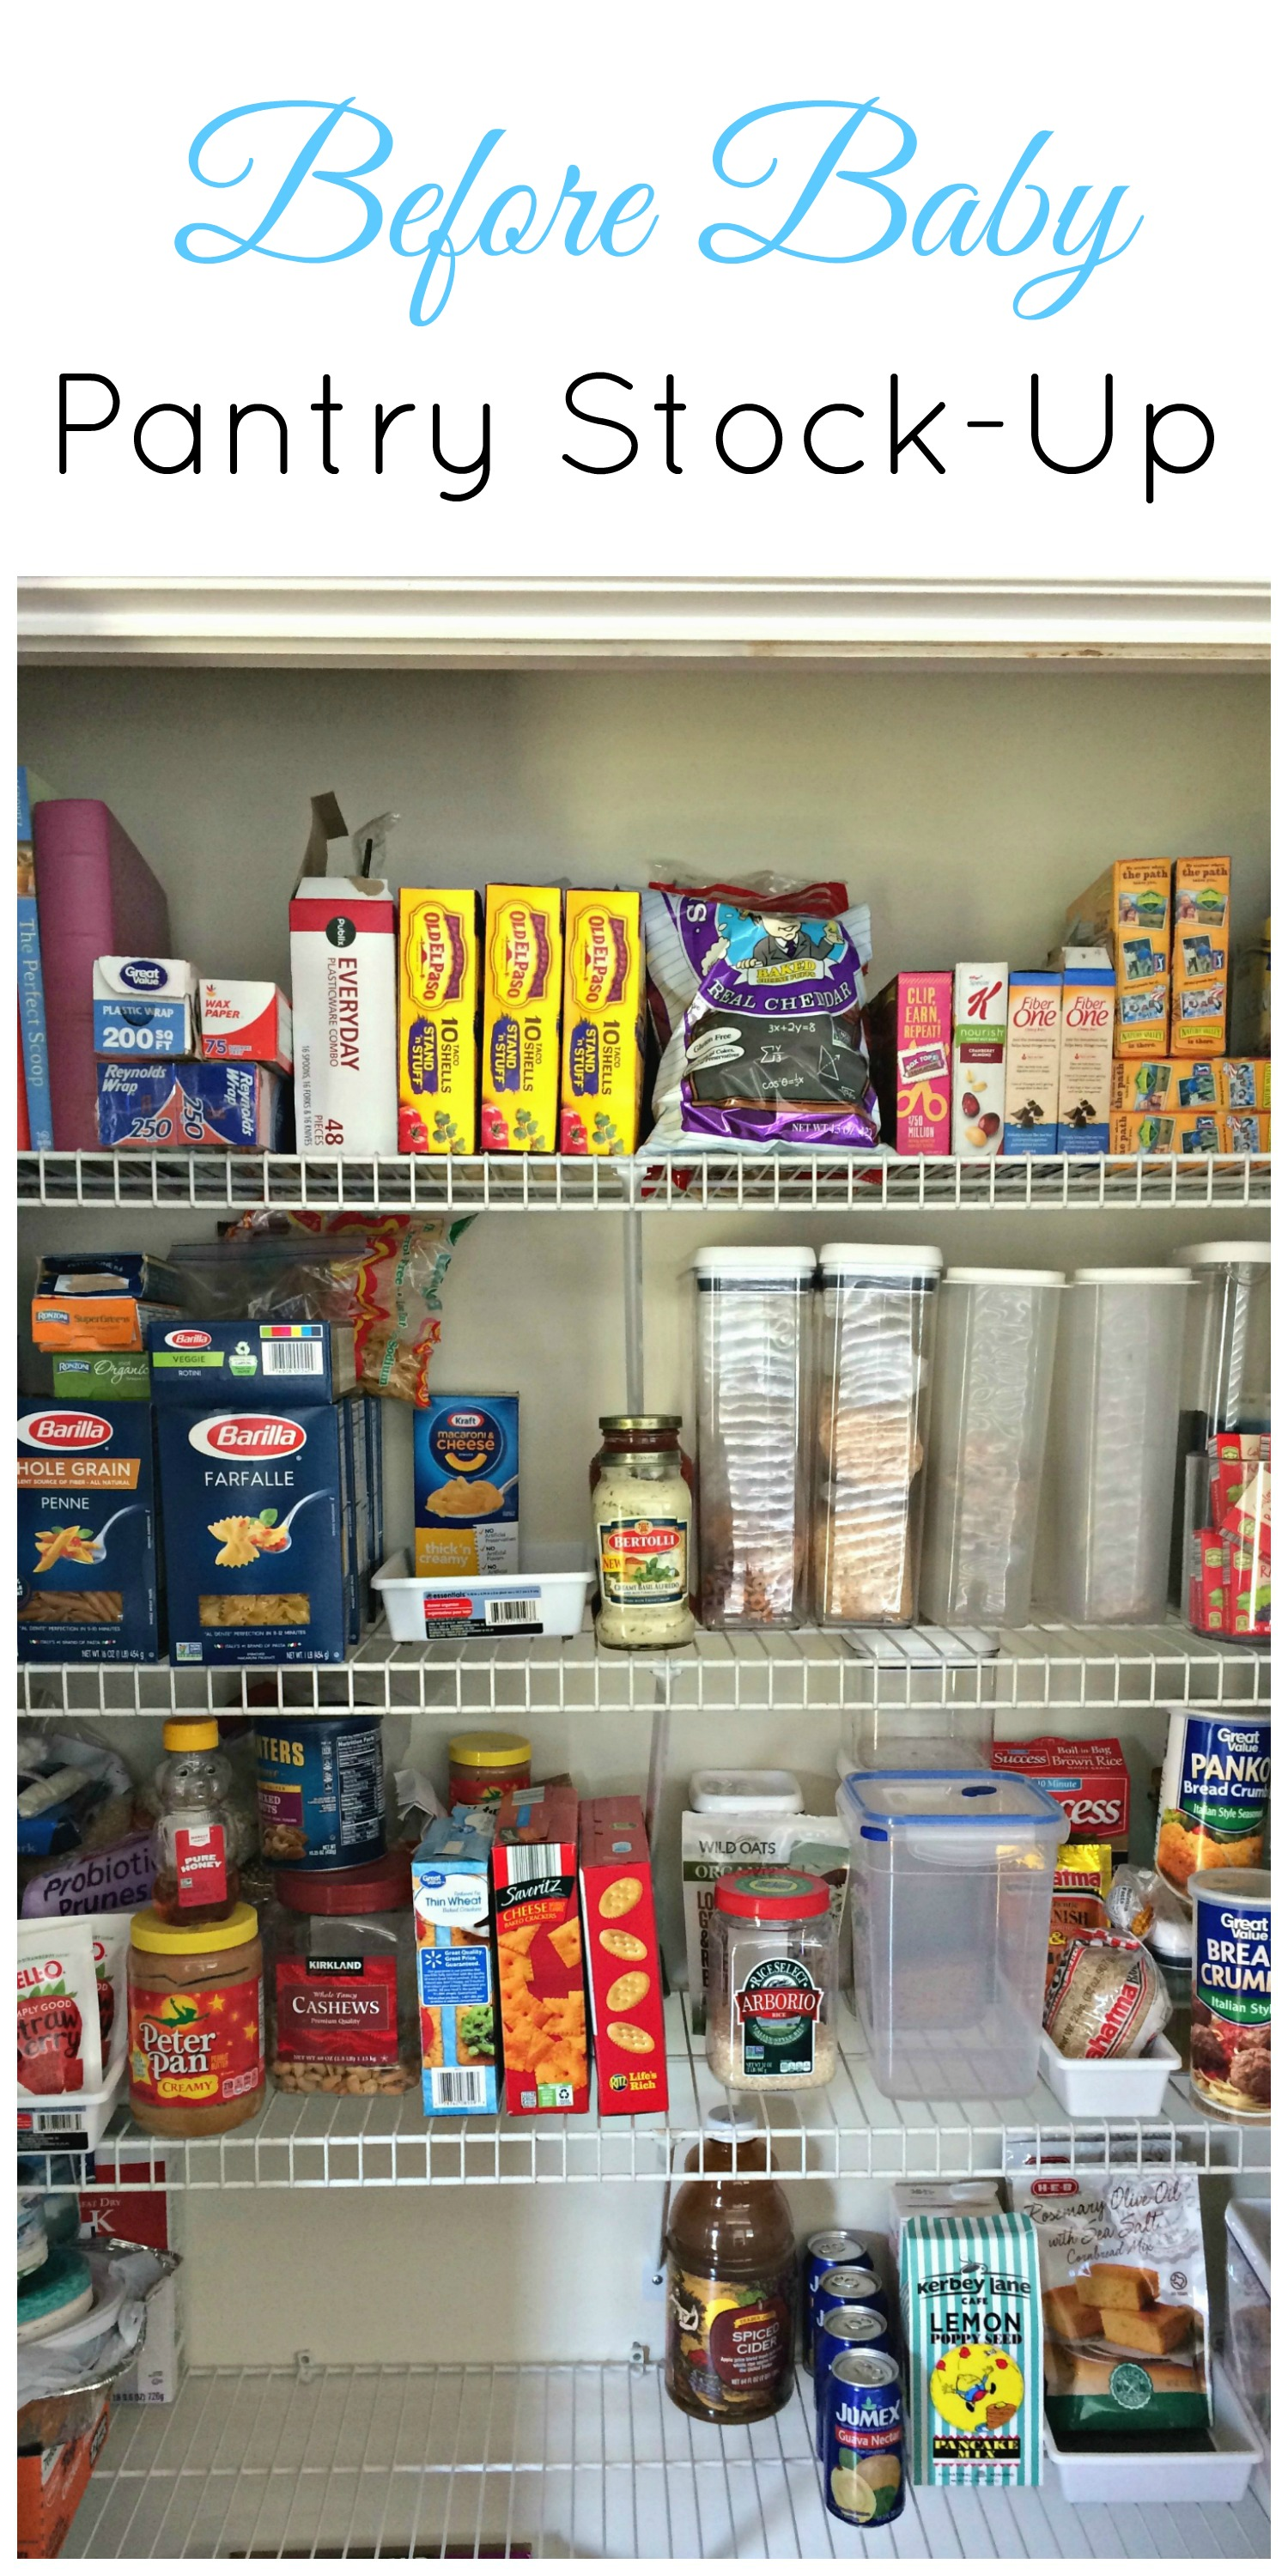 Pantry Stock Up Before Baby